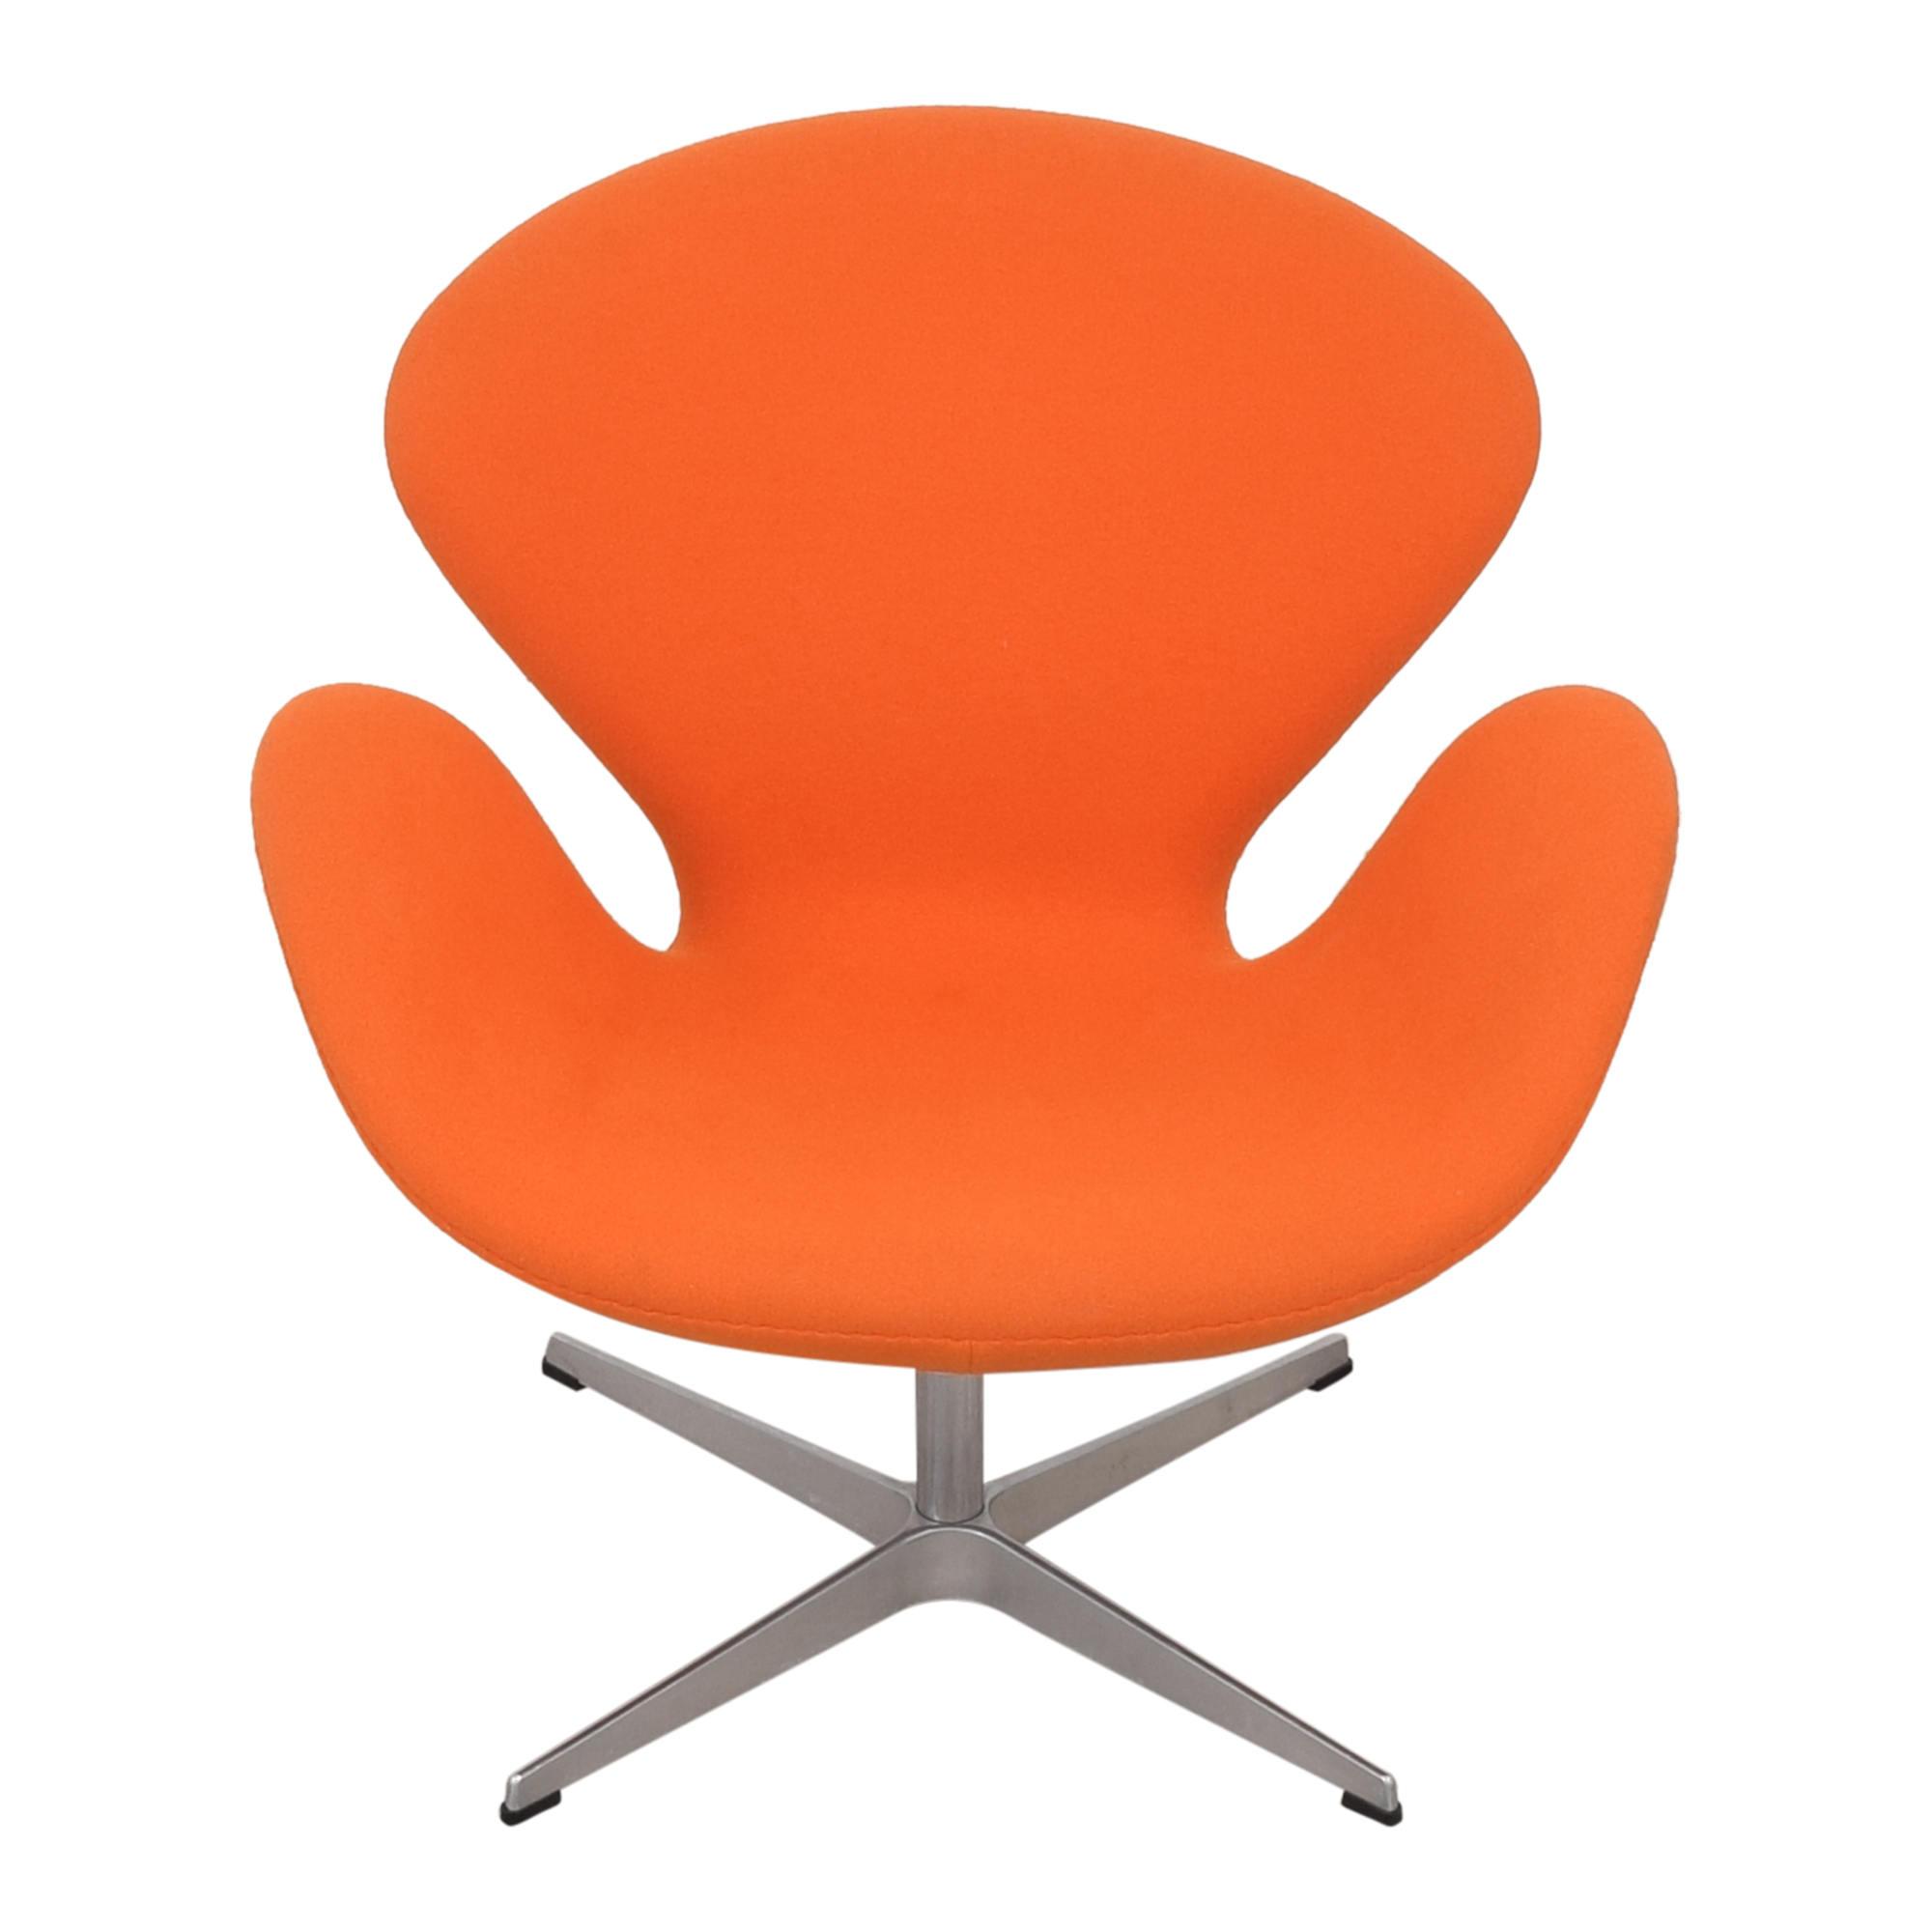 Fritz Hansen Fritz Hansen Swan Chair by Arne Jacobson second hand